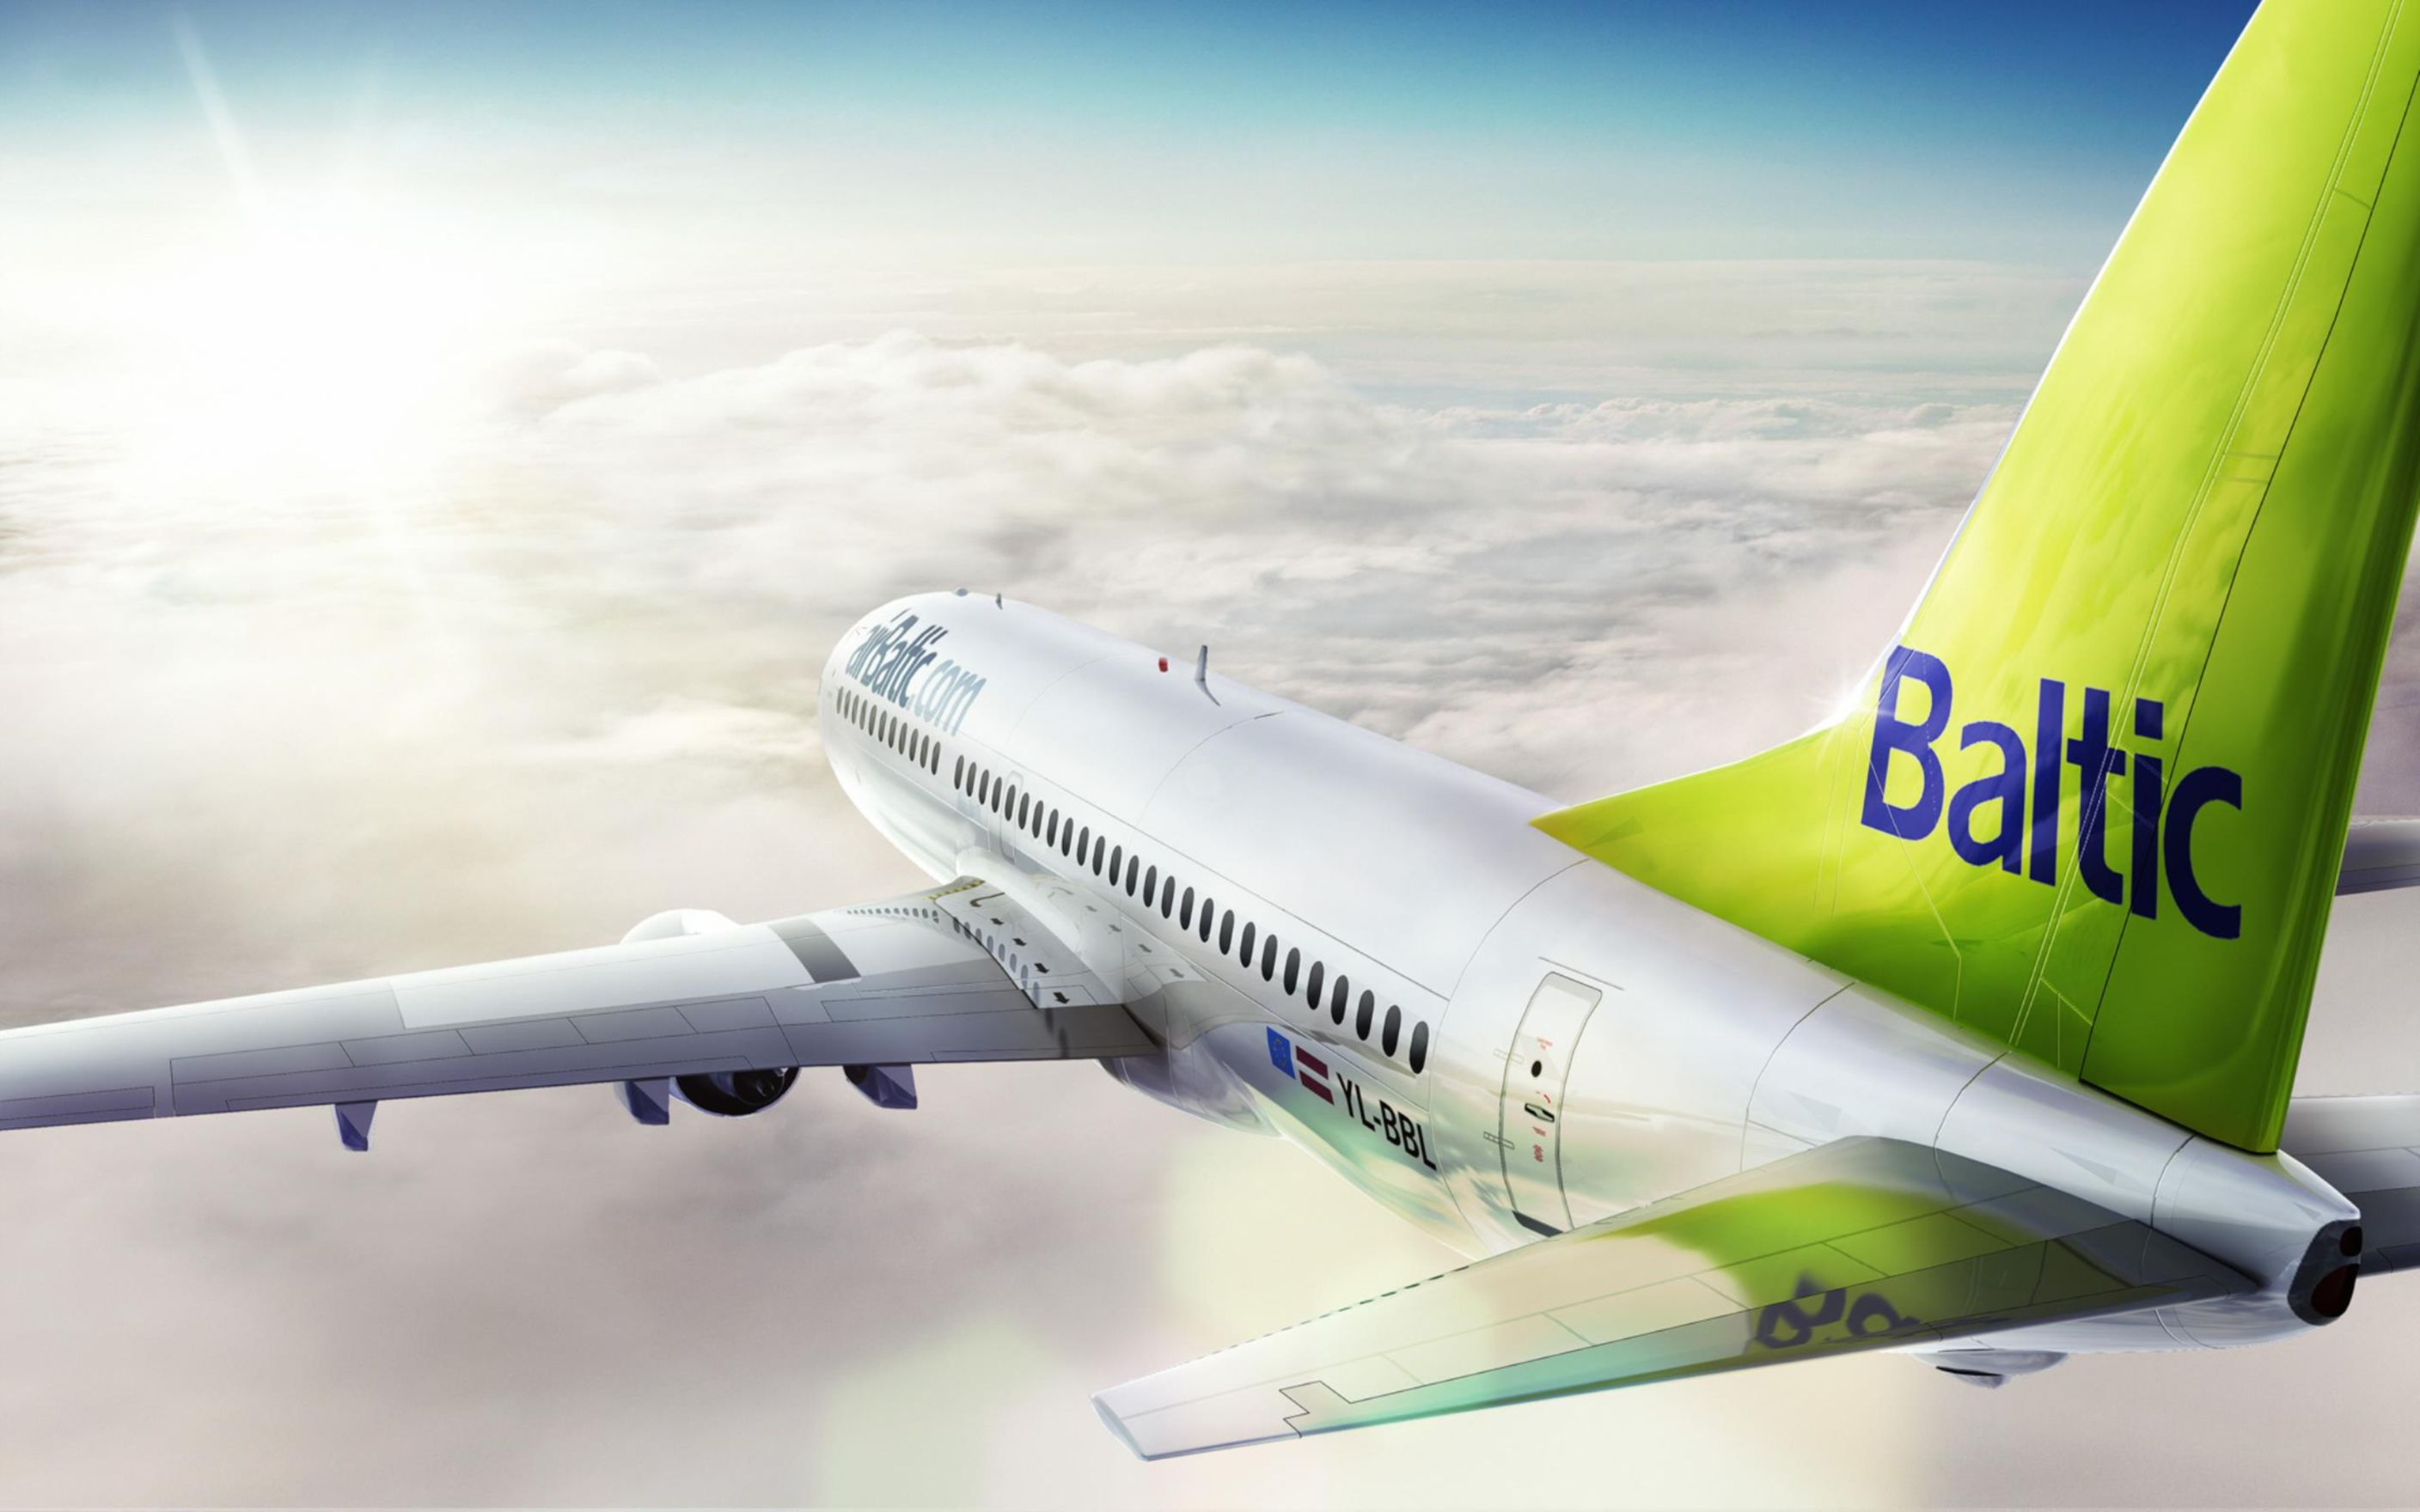 Download free HD Airbaltic Airplane Wallpaper, image